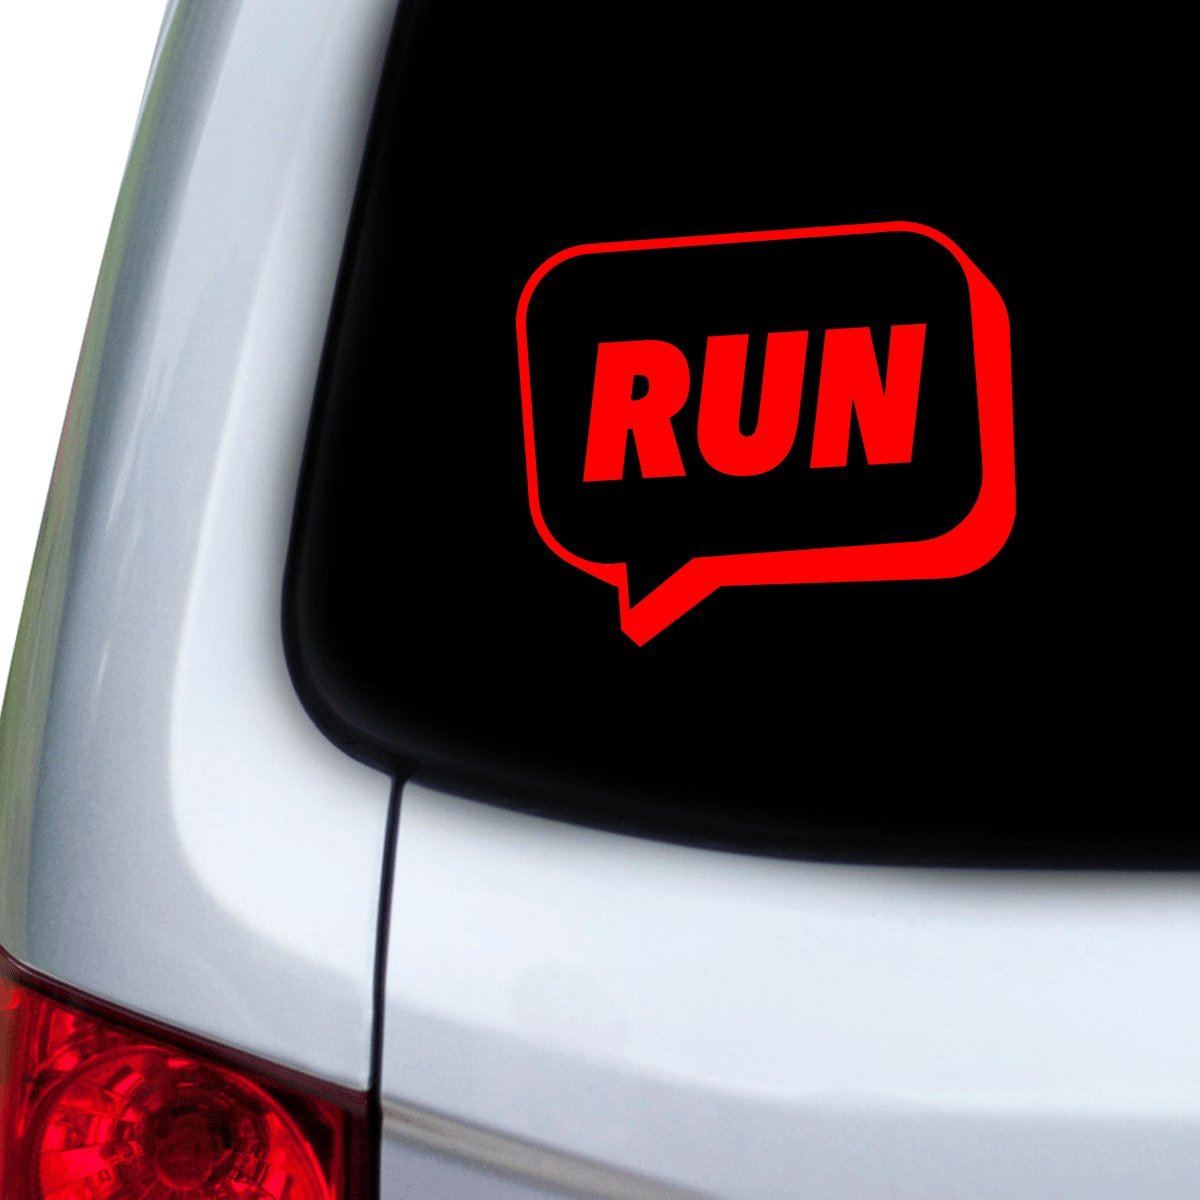 Hoods Doors StickAny Car and Auto Decal Series Run Speech Bubble Sticker for Windows Red